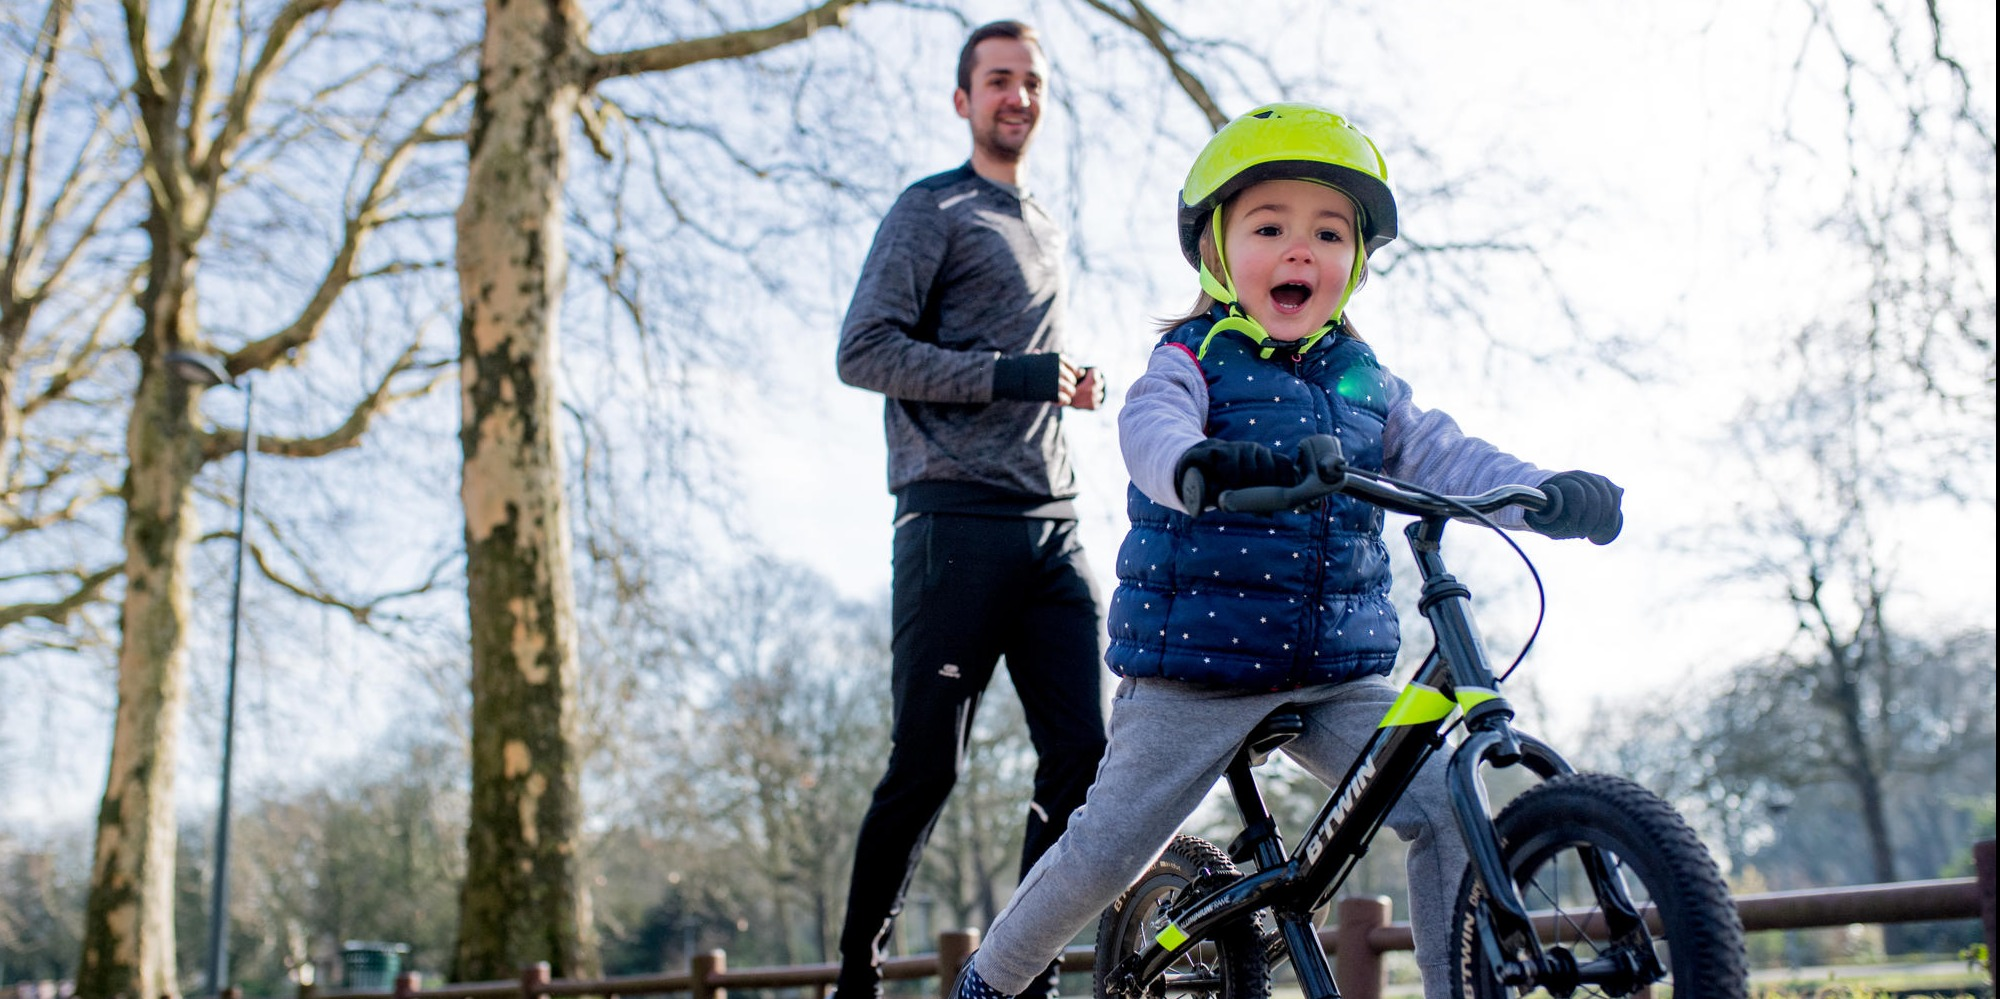 How, When And Where To Teach Your Child To Ride A Bike?